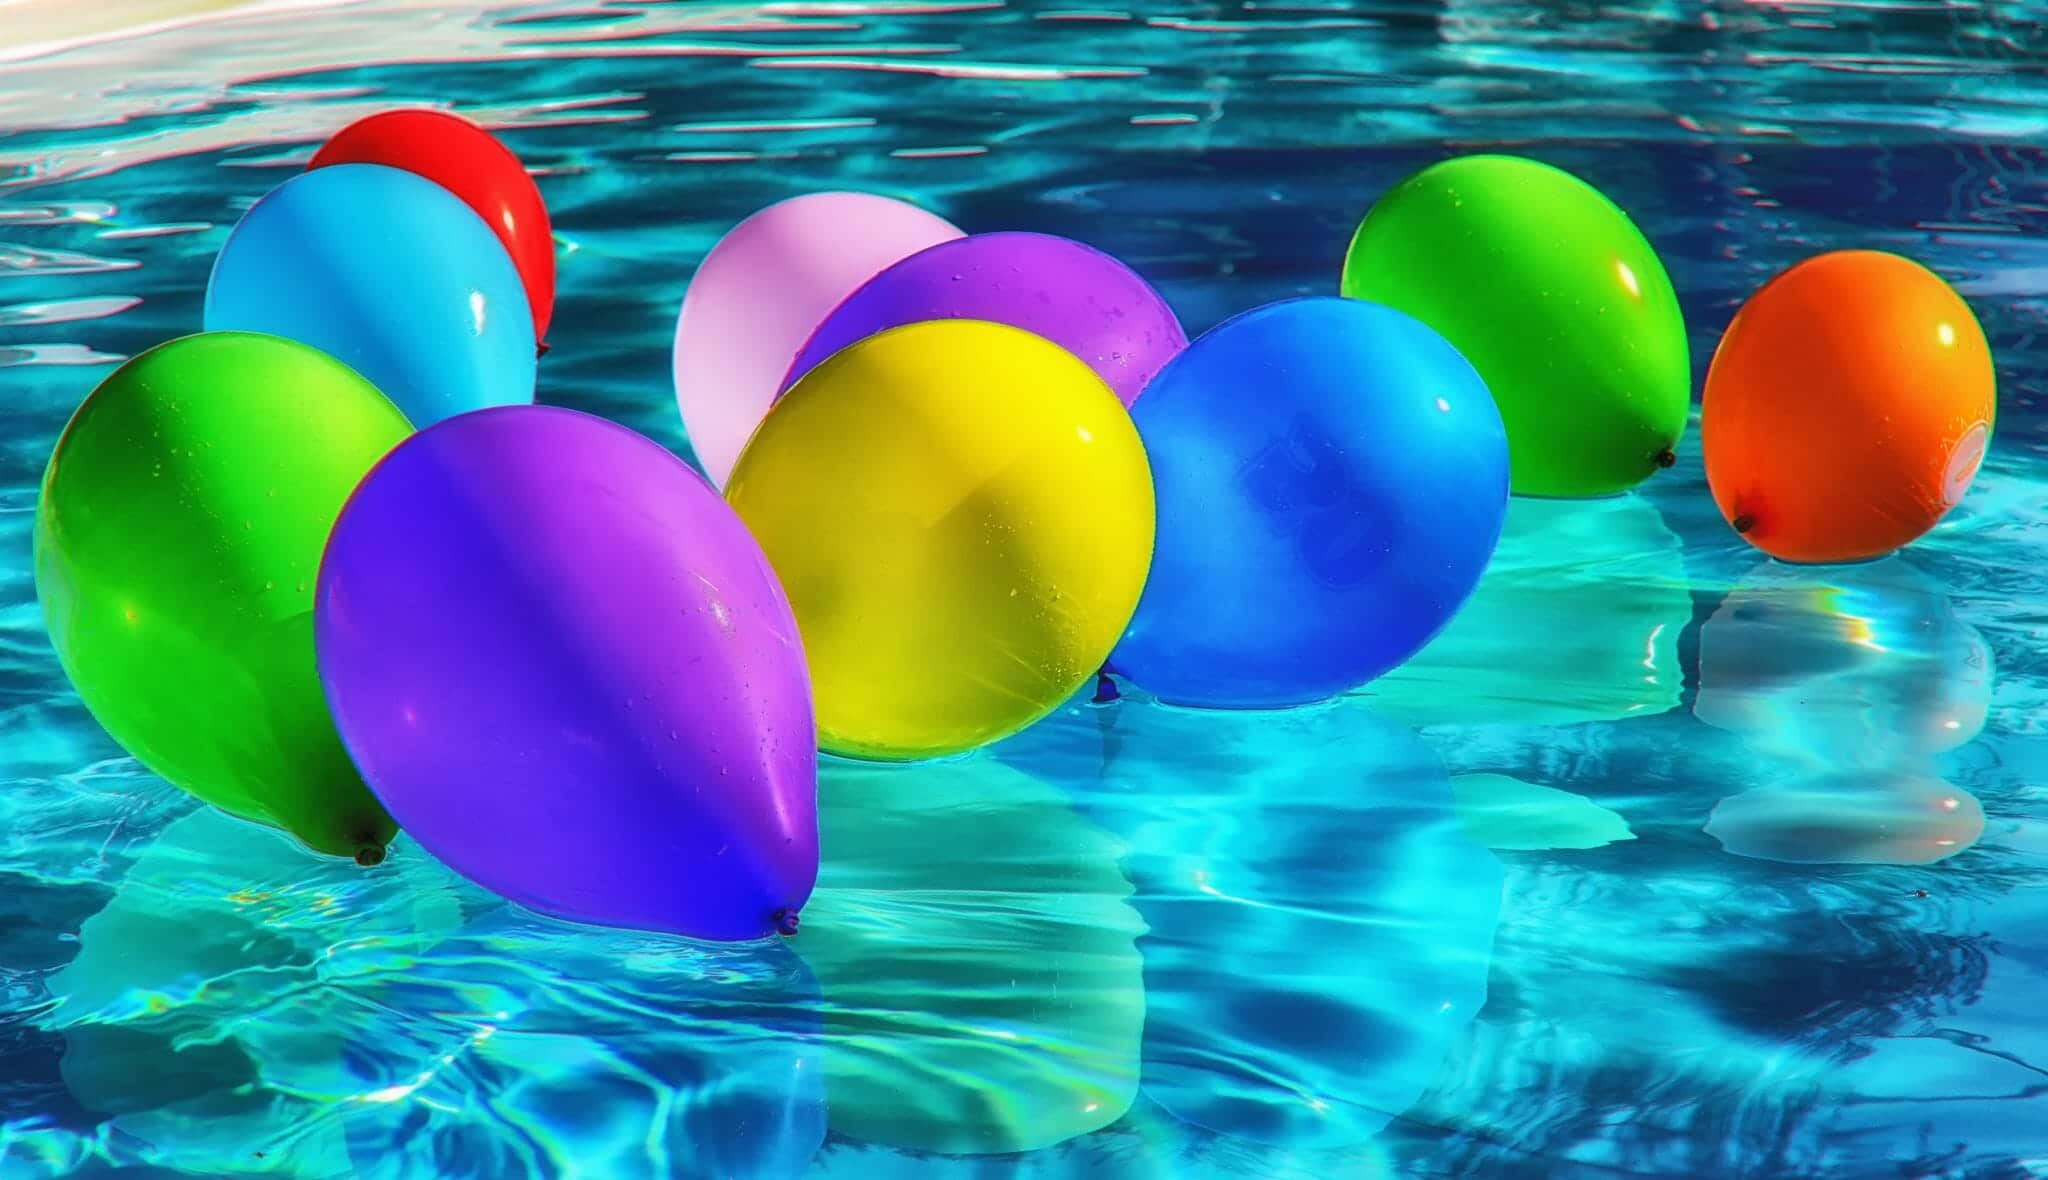 Summer Activities And Projects For Elementary Students